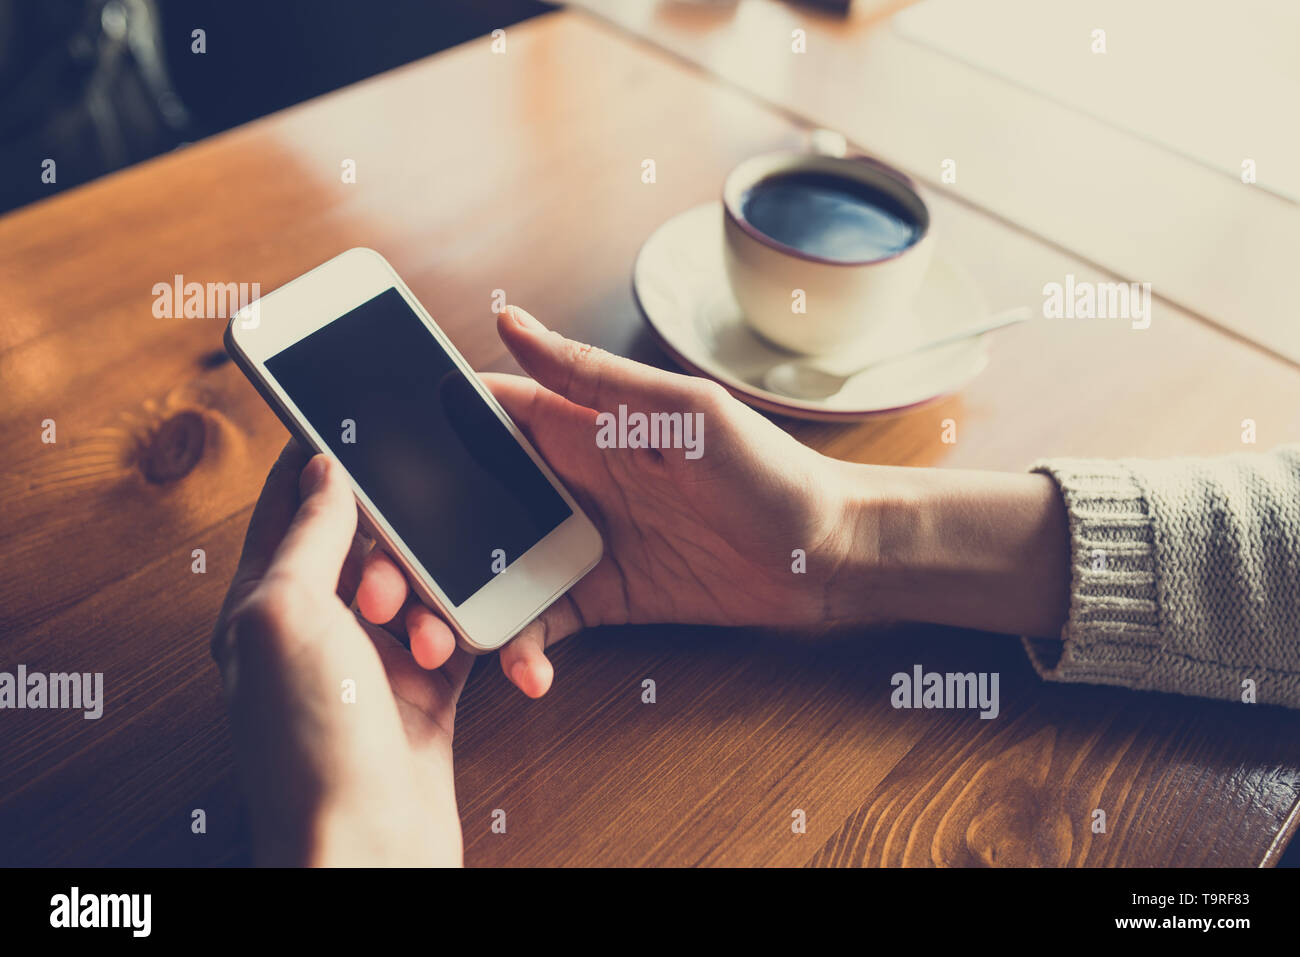 Woman using smartphone on wooden table in cafe. Close-up image with social networks concept Stock Photo